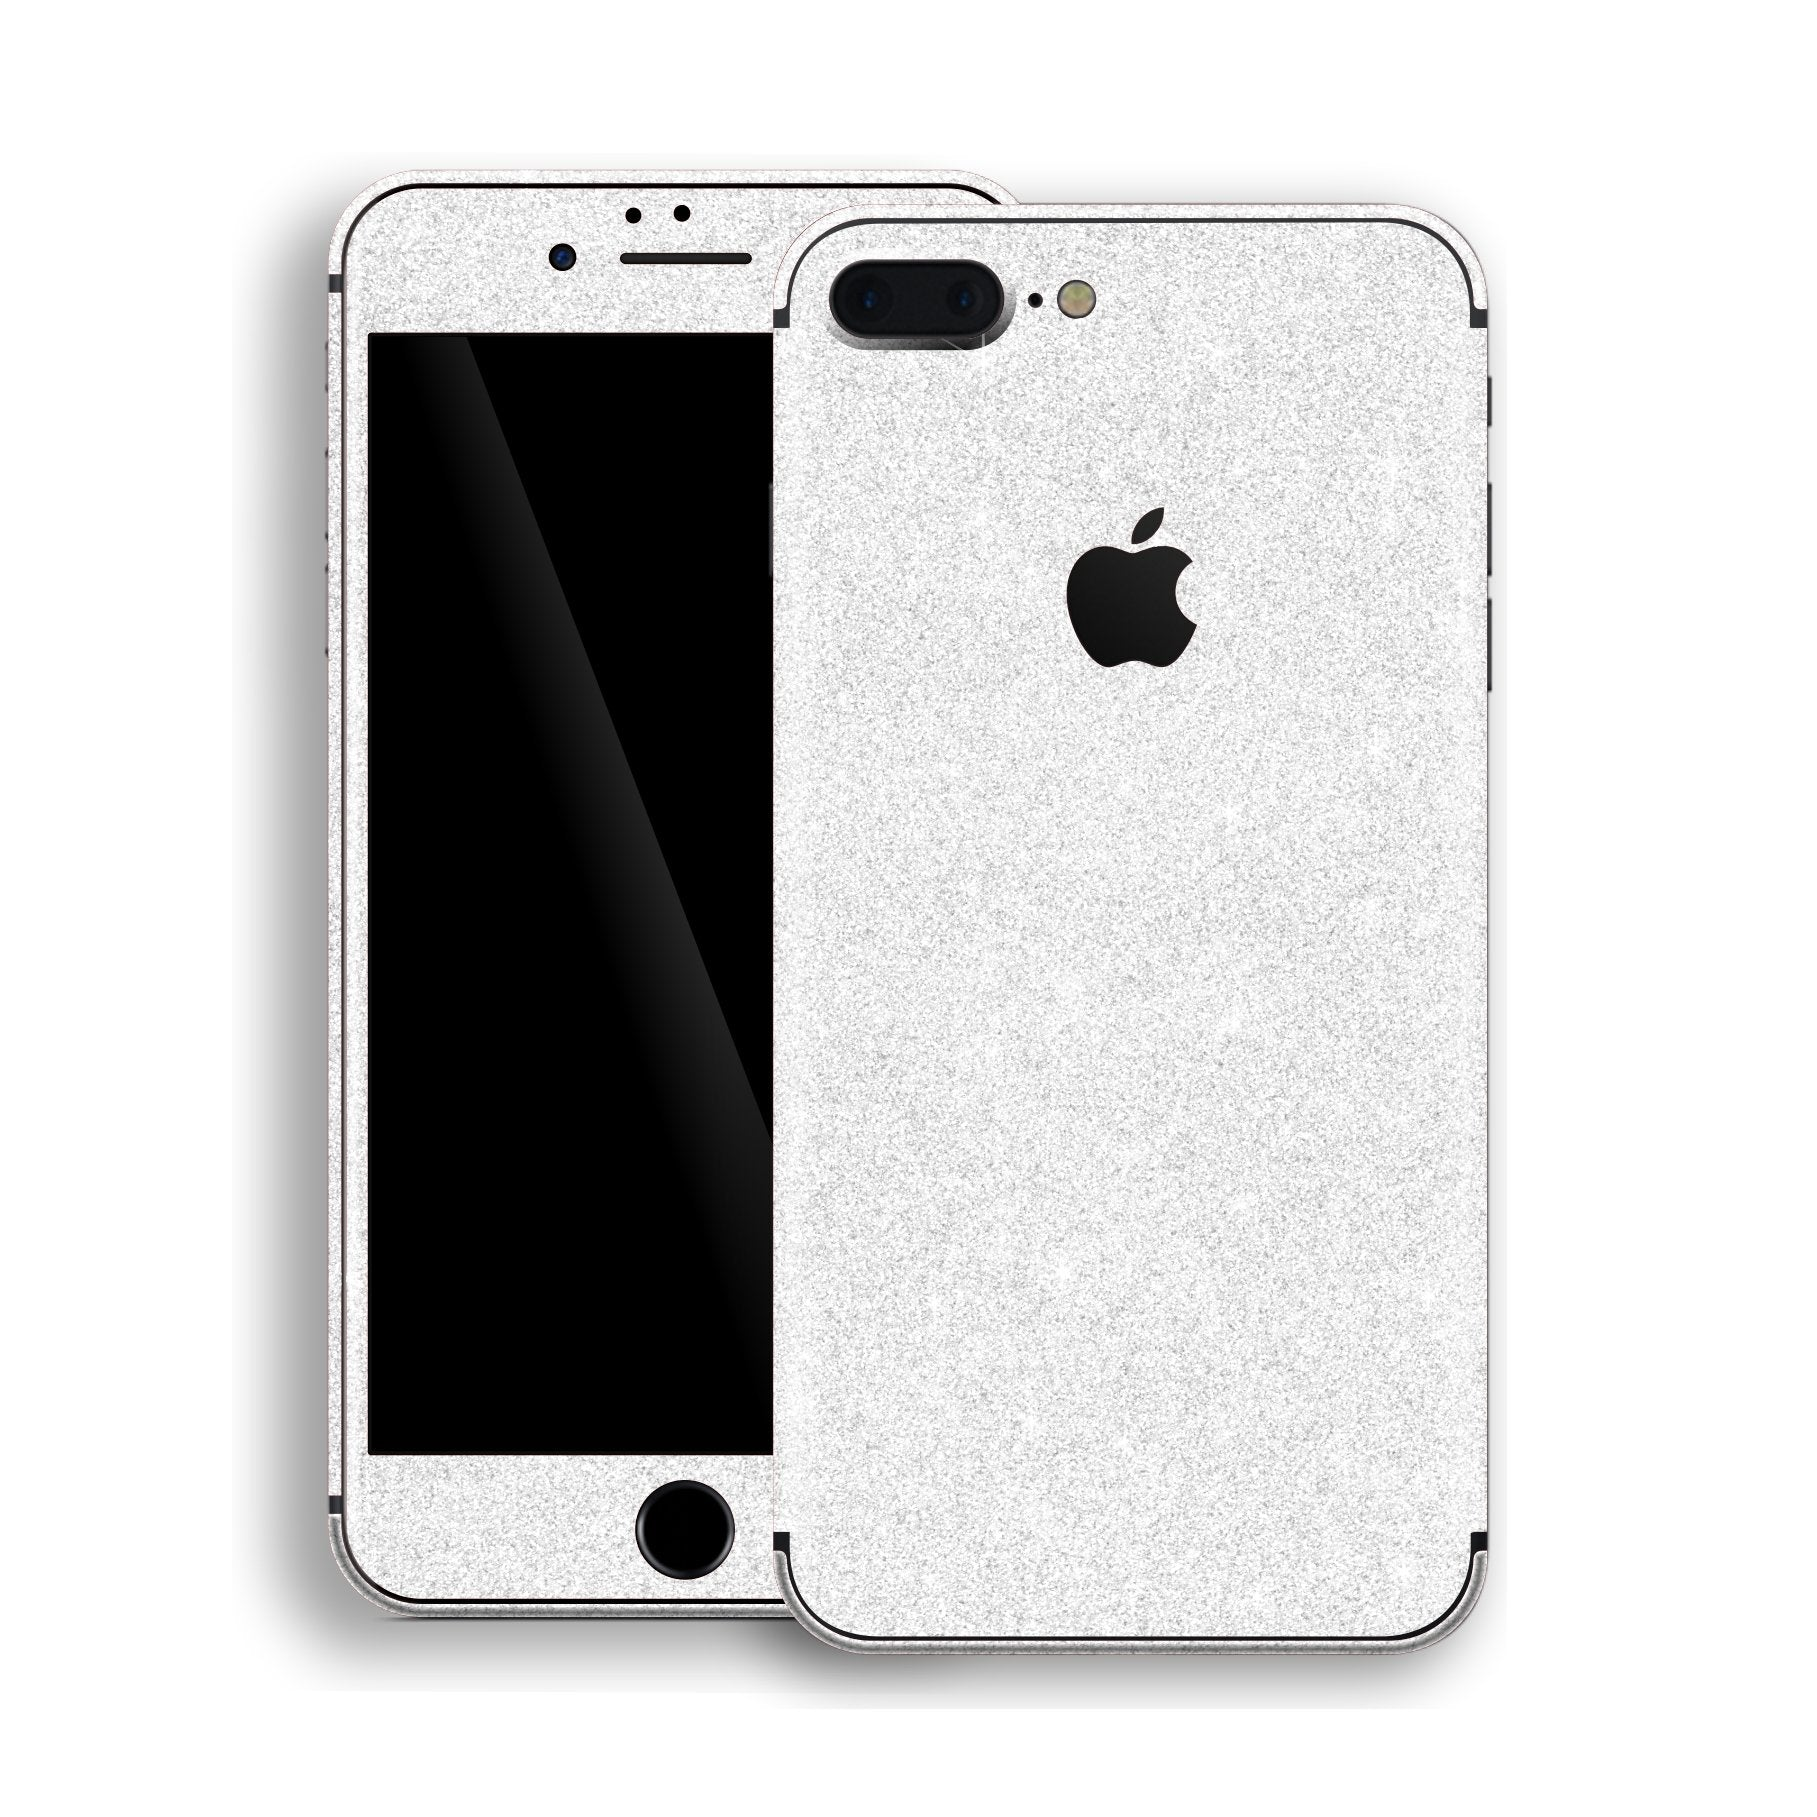 iPhone 8 Plus Diamond White Shimmering, Sparkling, Glitter Skin, Decal, Wrap, Protector, Cover by EasySkinz | EasySkinz.com